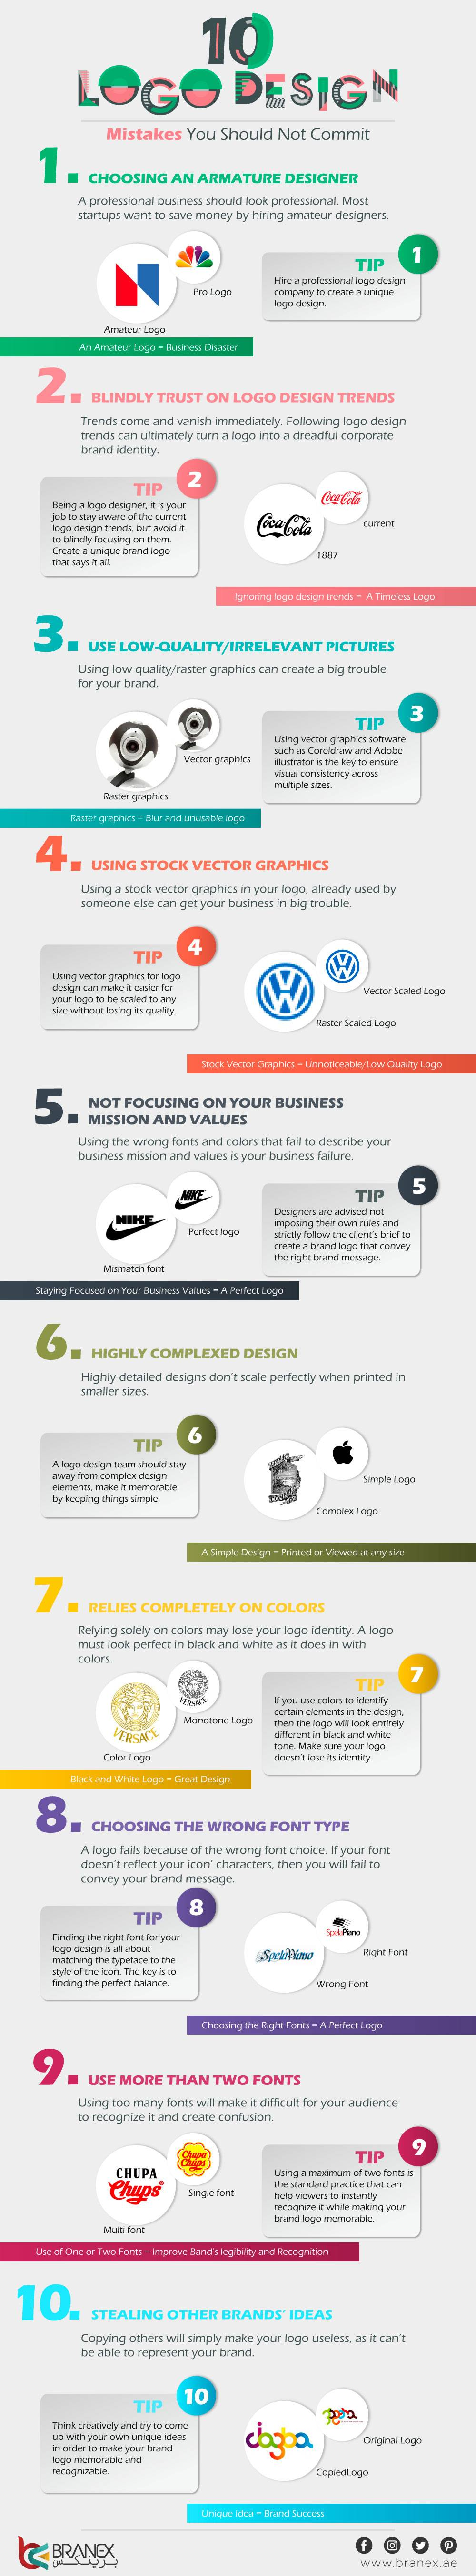 Infographic displaying top 10 logo design mistakes that you should avoid